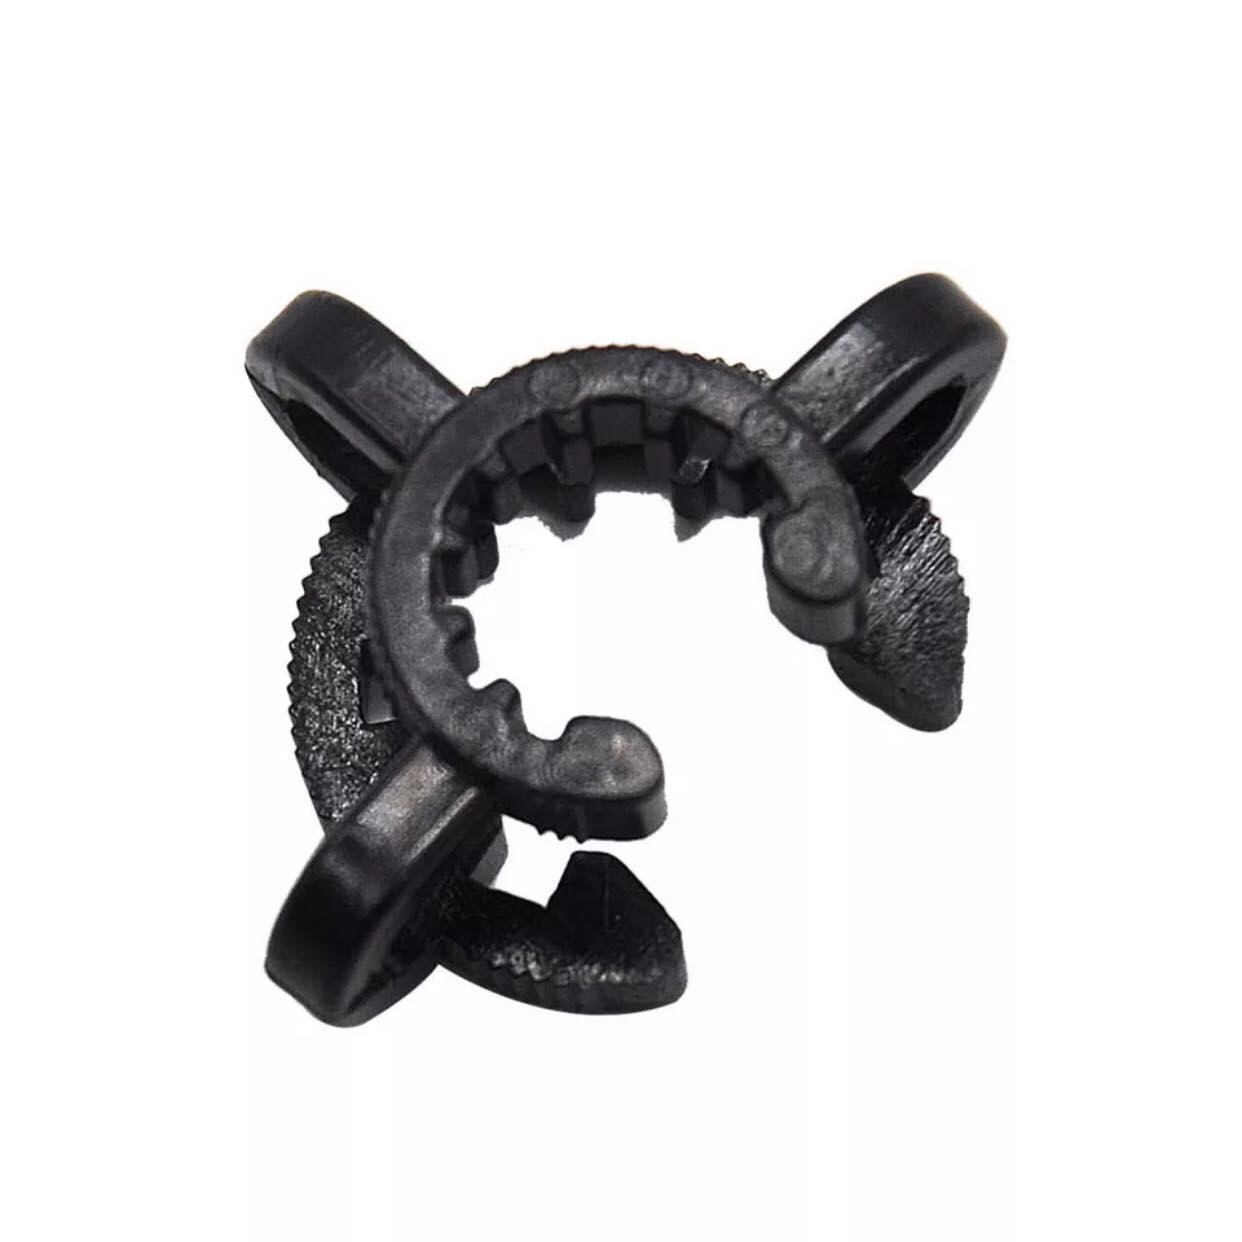 10mm/14mm/19mm Clip for Glass Adapter (1piece)